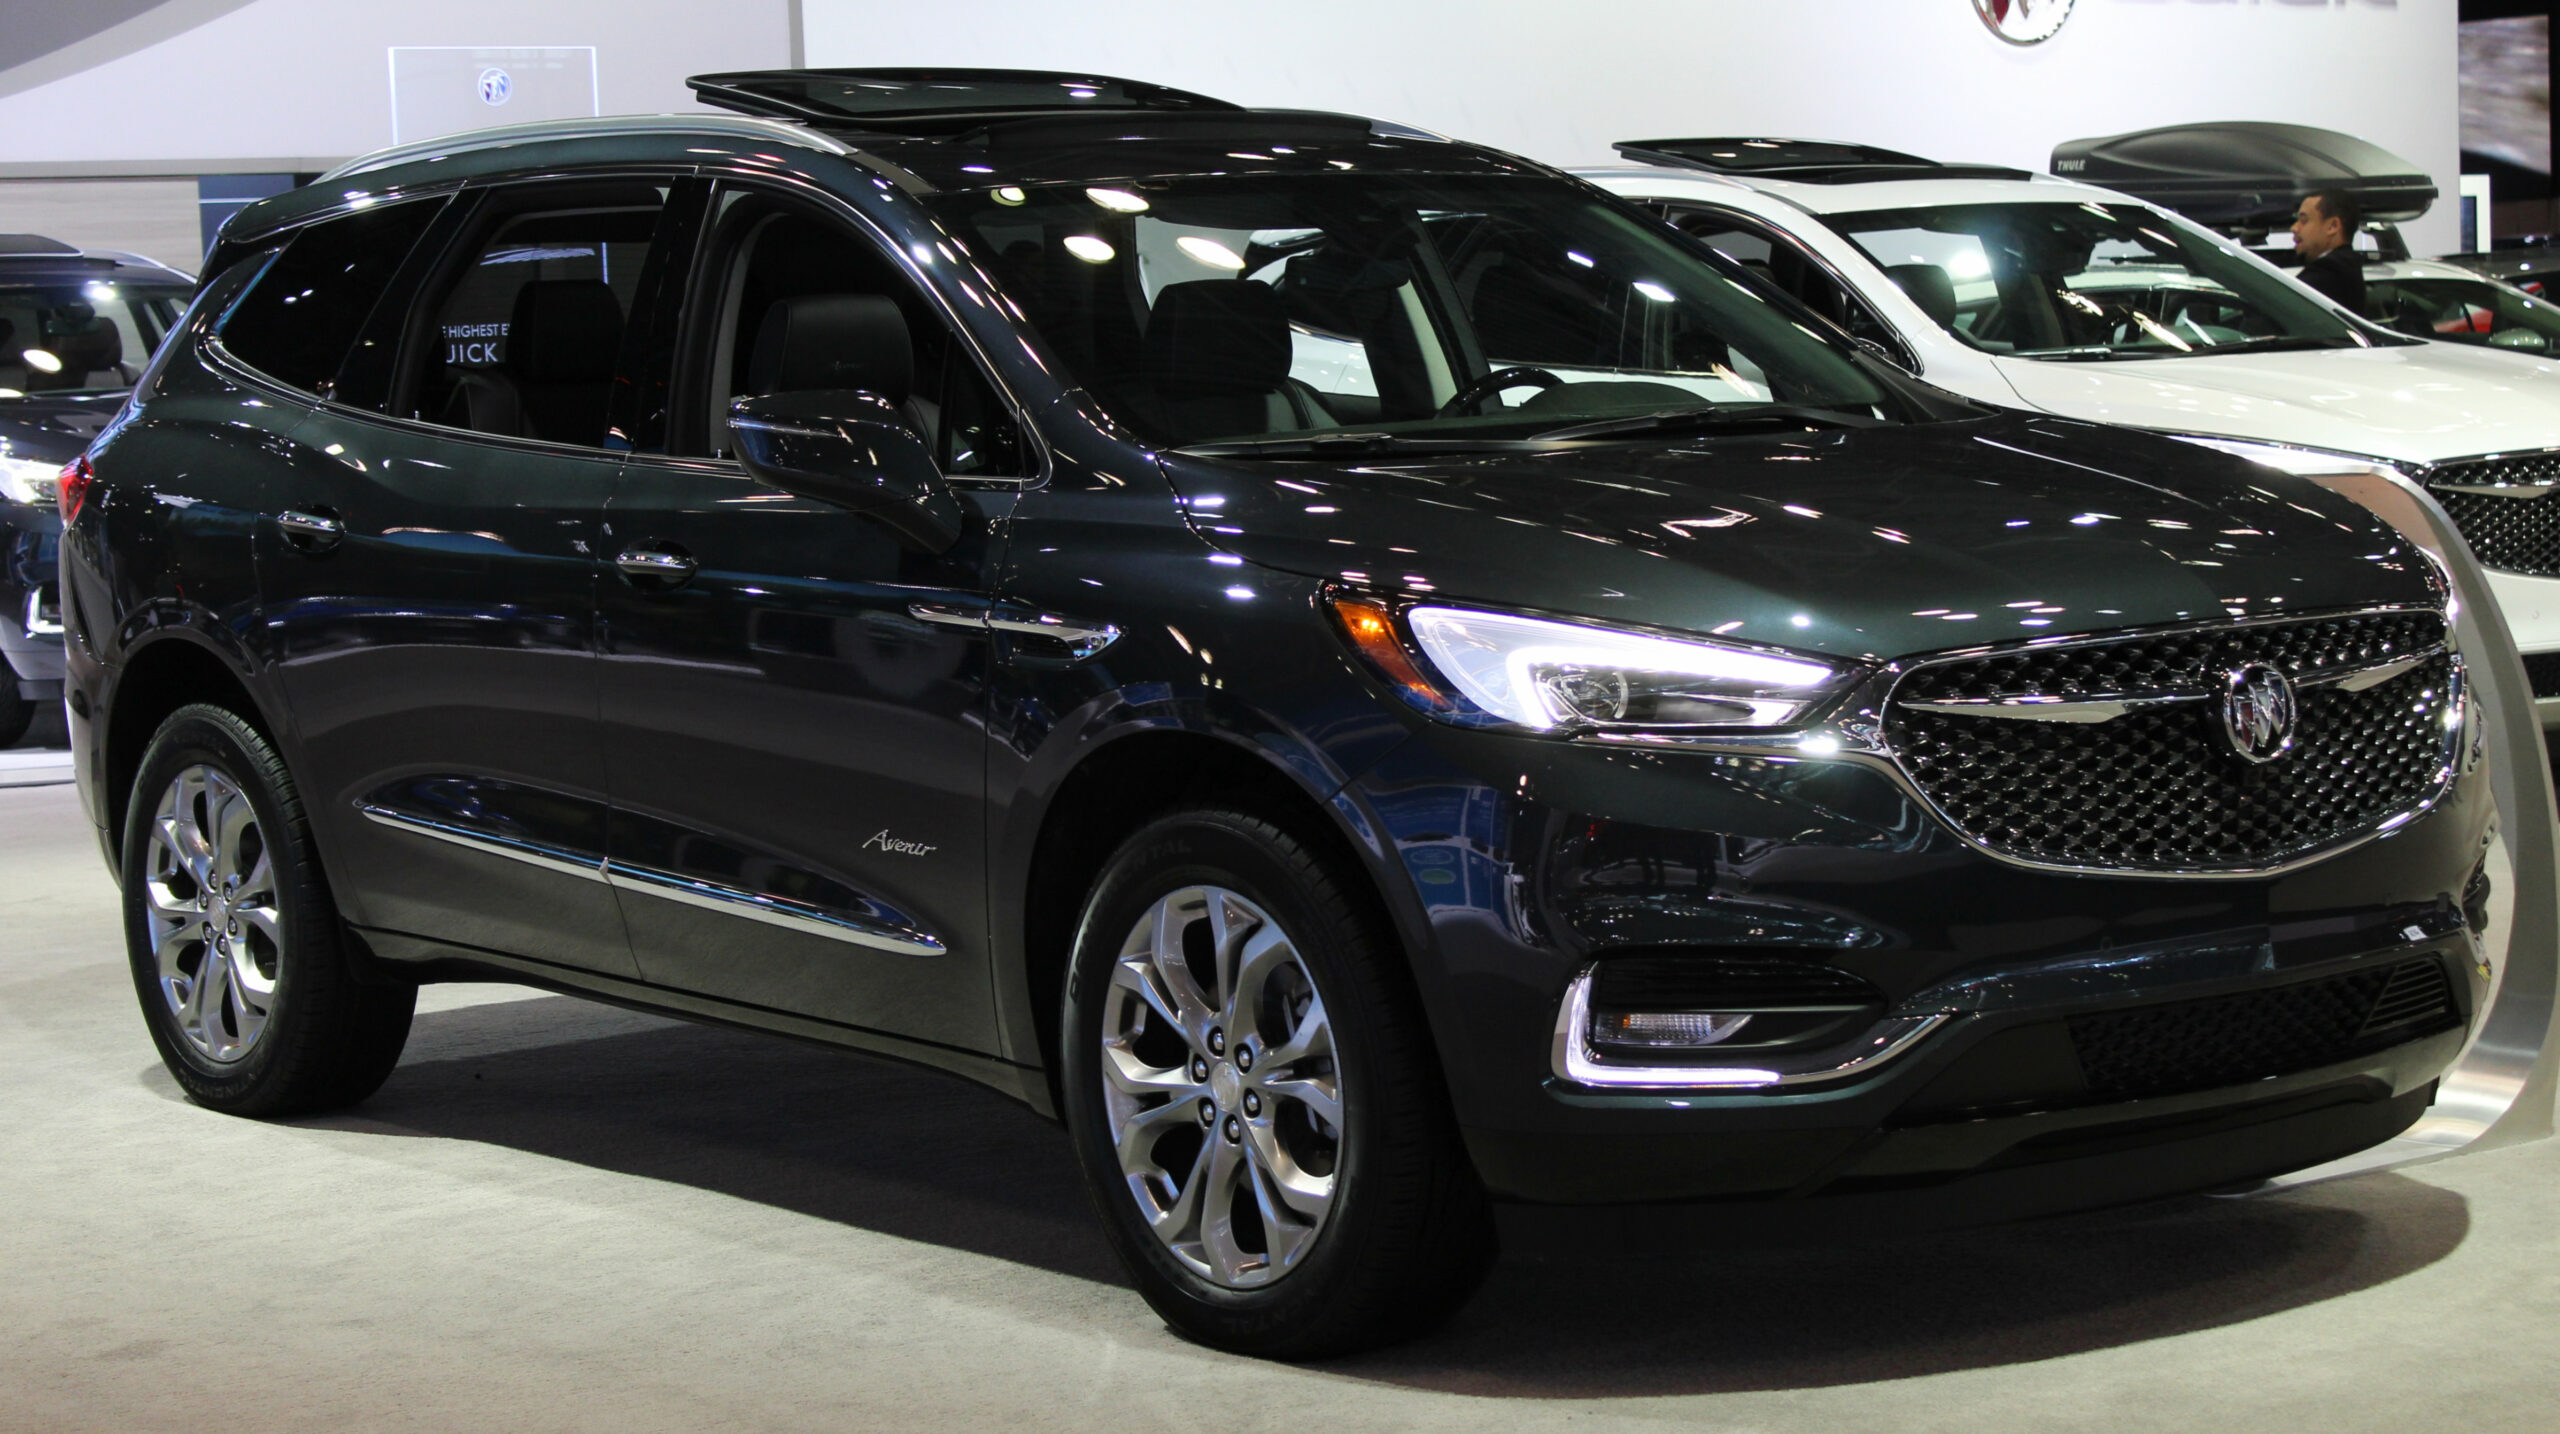 Price When Does The 2022 Buick Encore Come Out